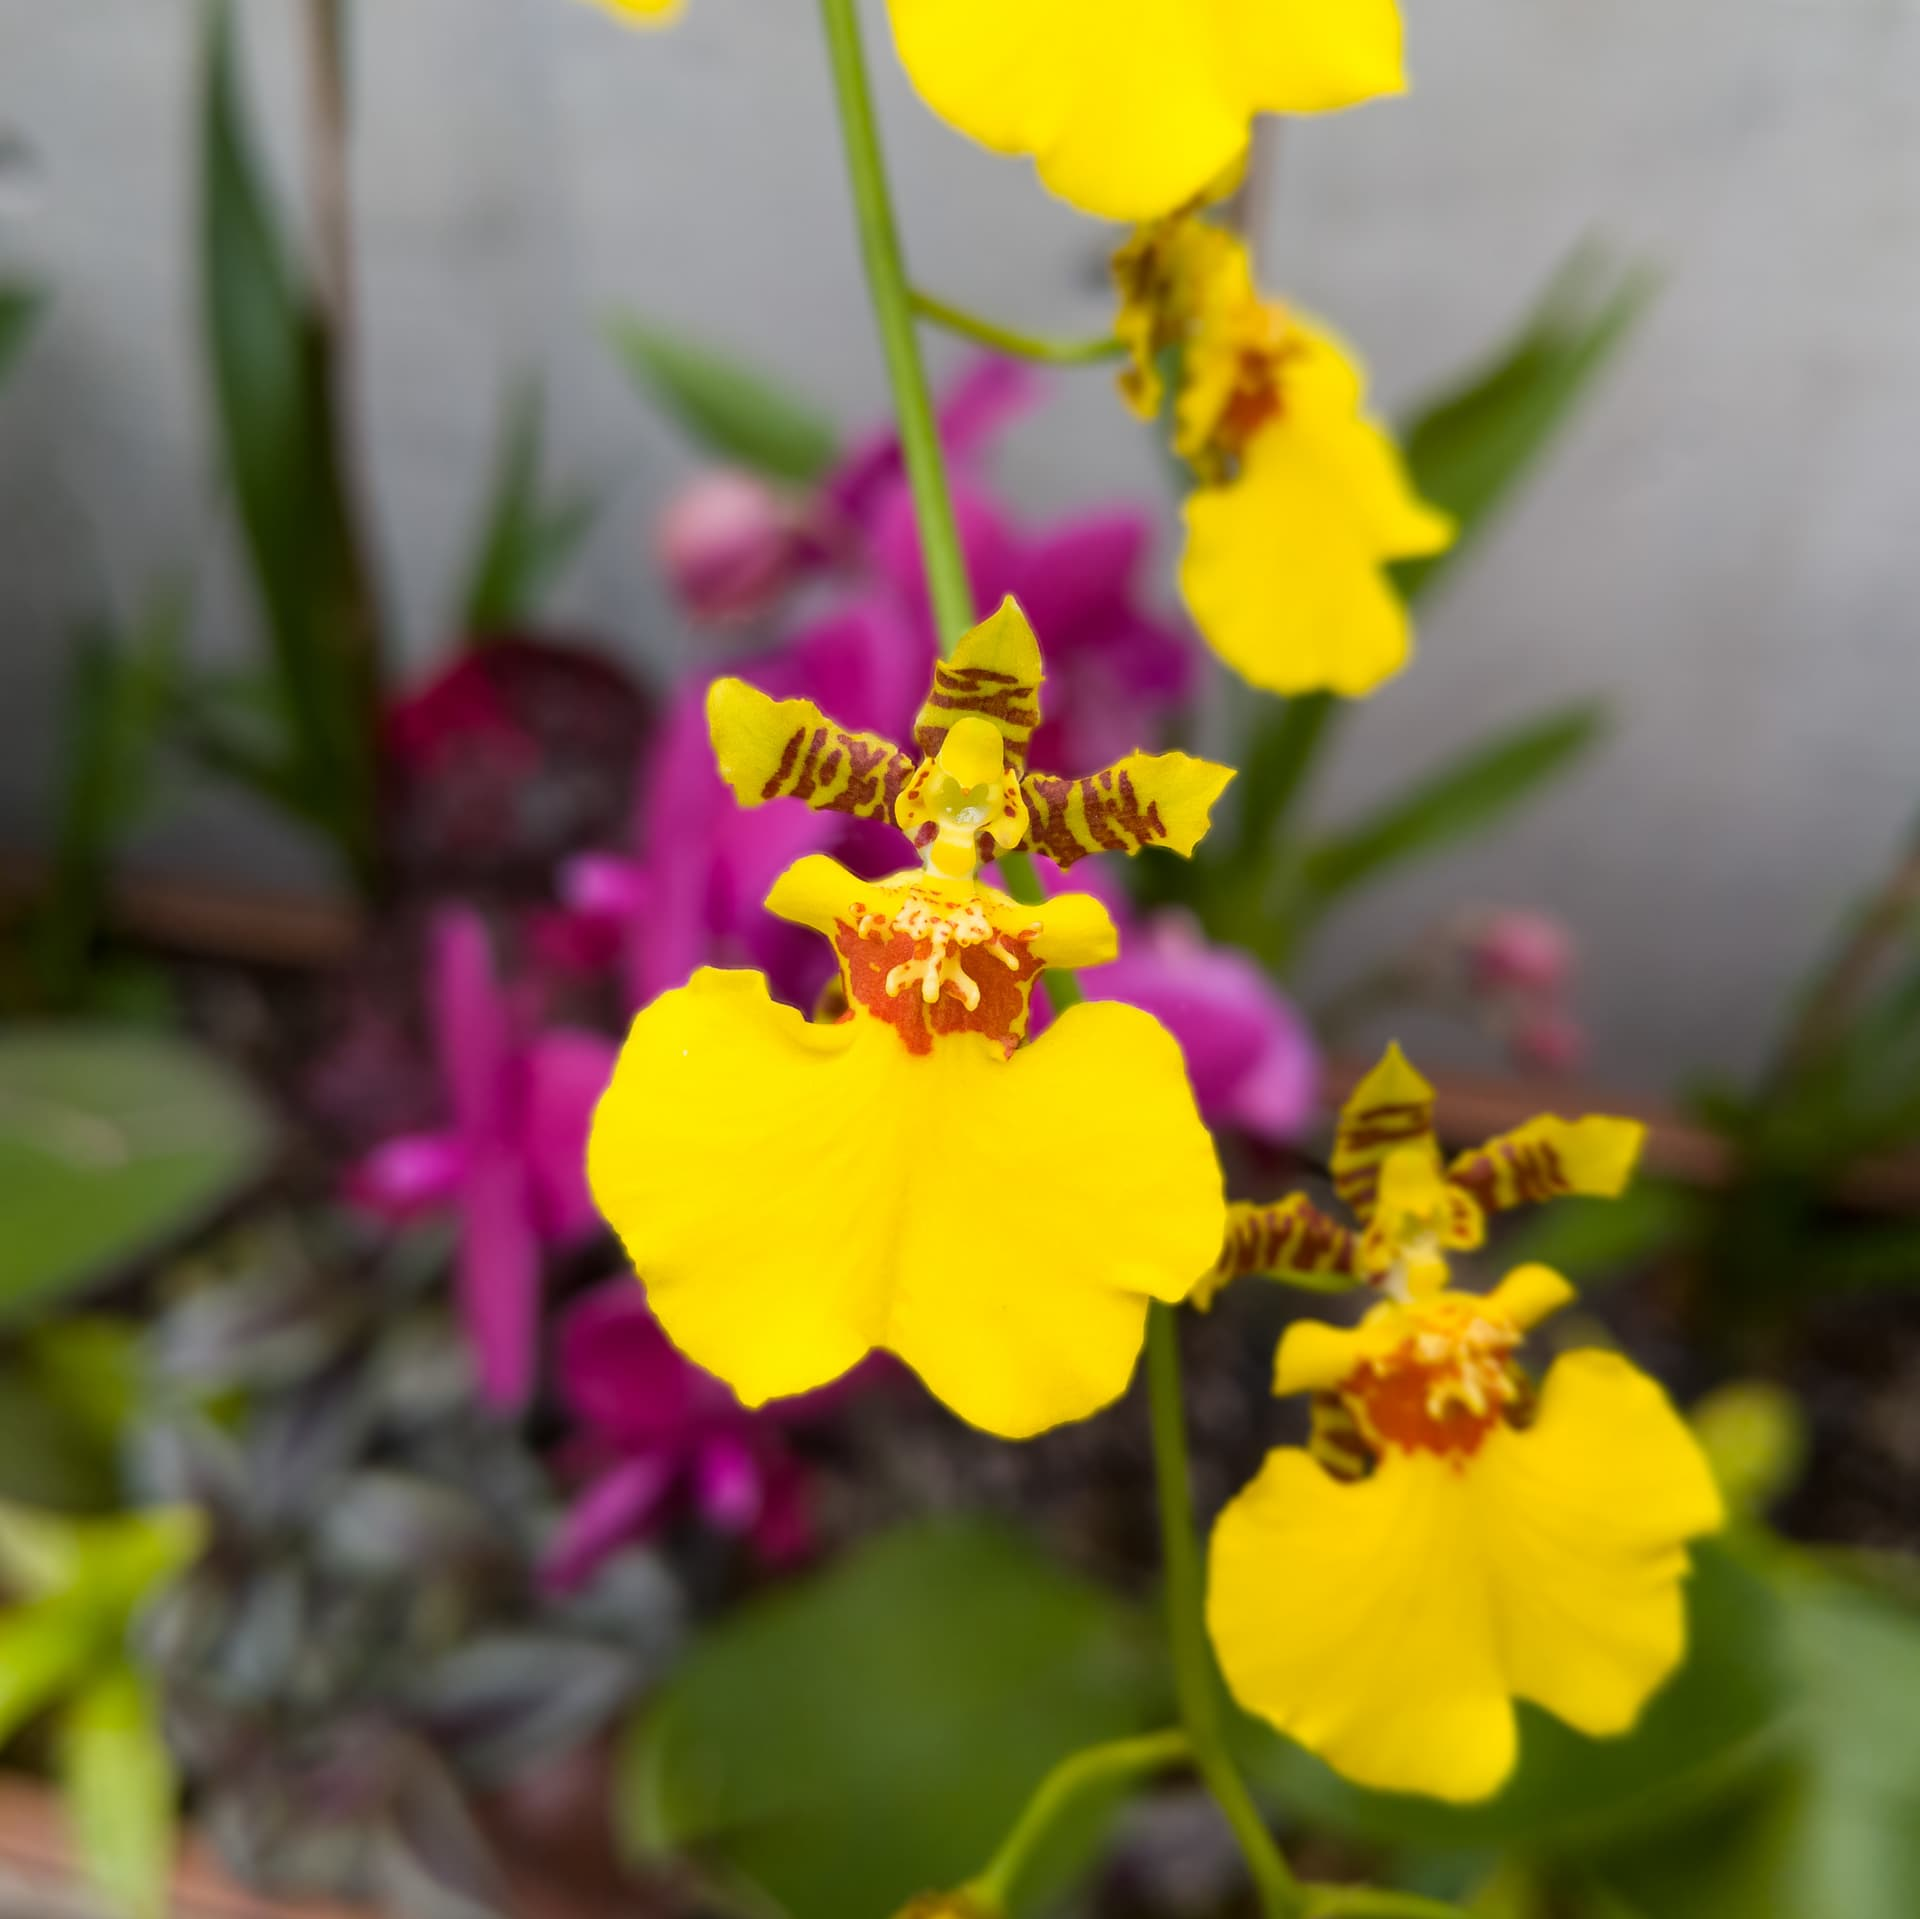 A stem of small yellow and purple orchid flowers. The shape of the flowers and their arrangement is reminiscent of a group of dancers.